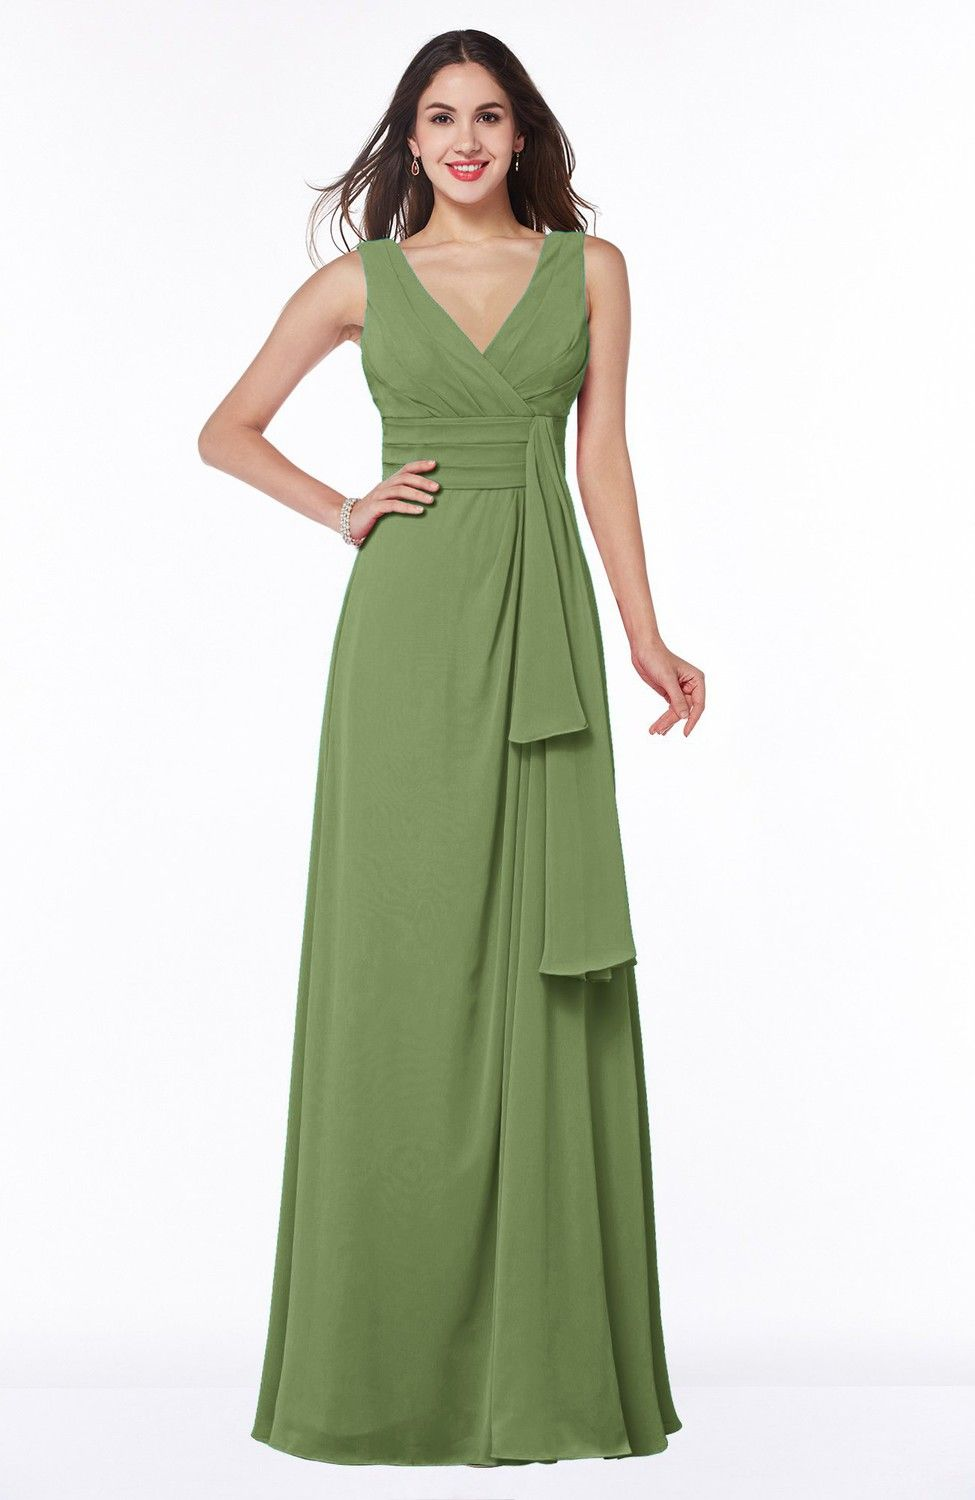 Moss green bridesmaid dress vintage sleeveless zipper floor moss green bridesmaid dress vintage sleeveless zipper floor length sash plus size champagne ombrellifo Choice Image